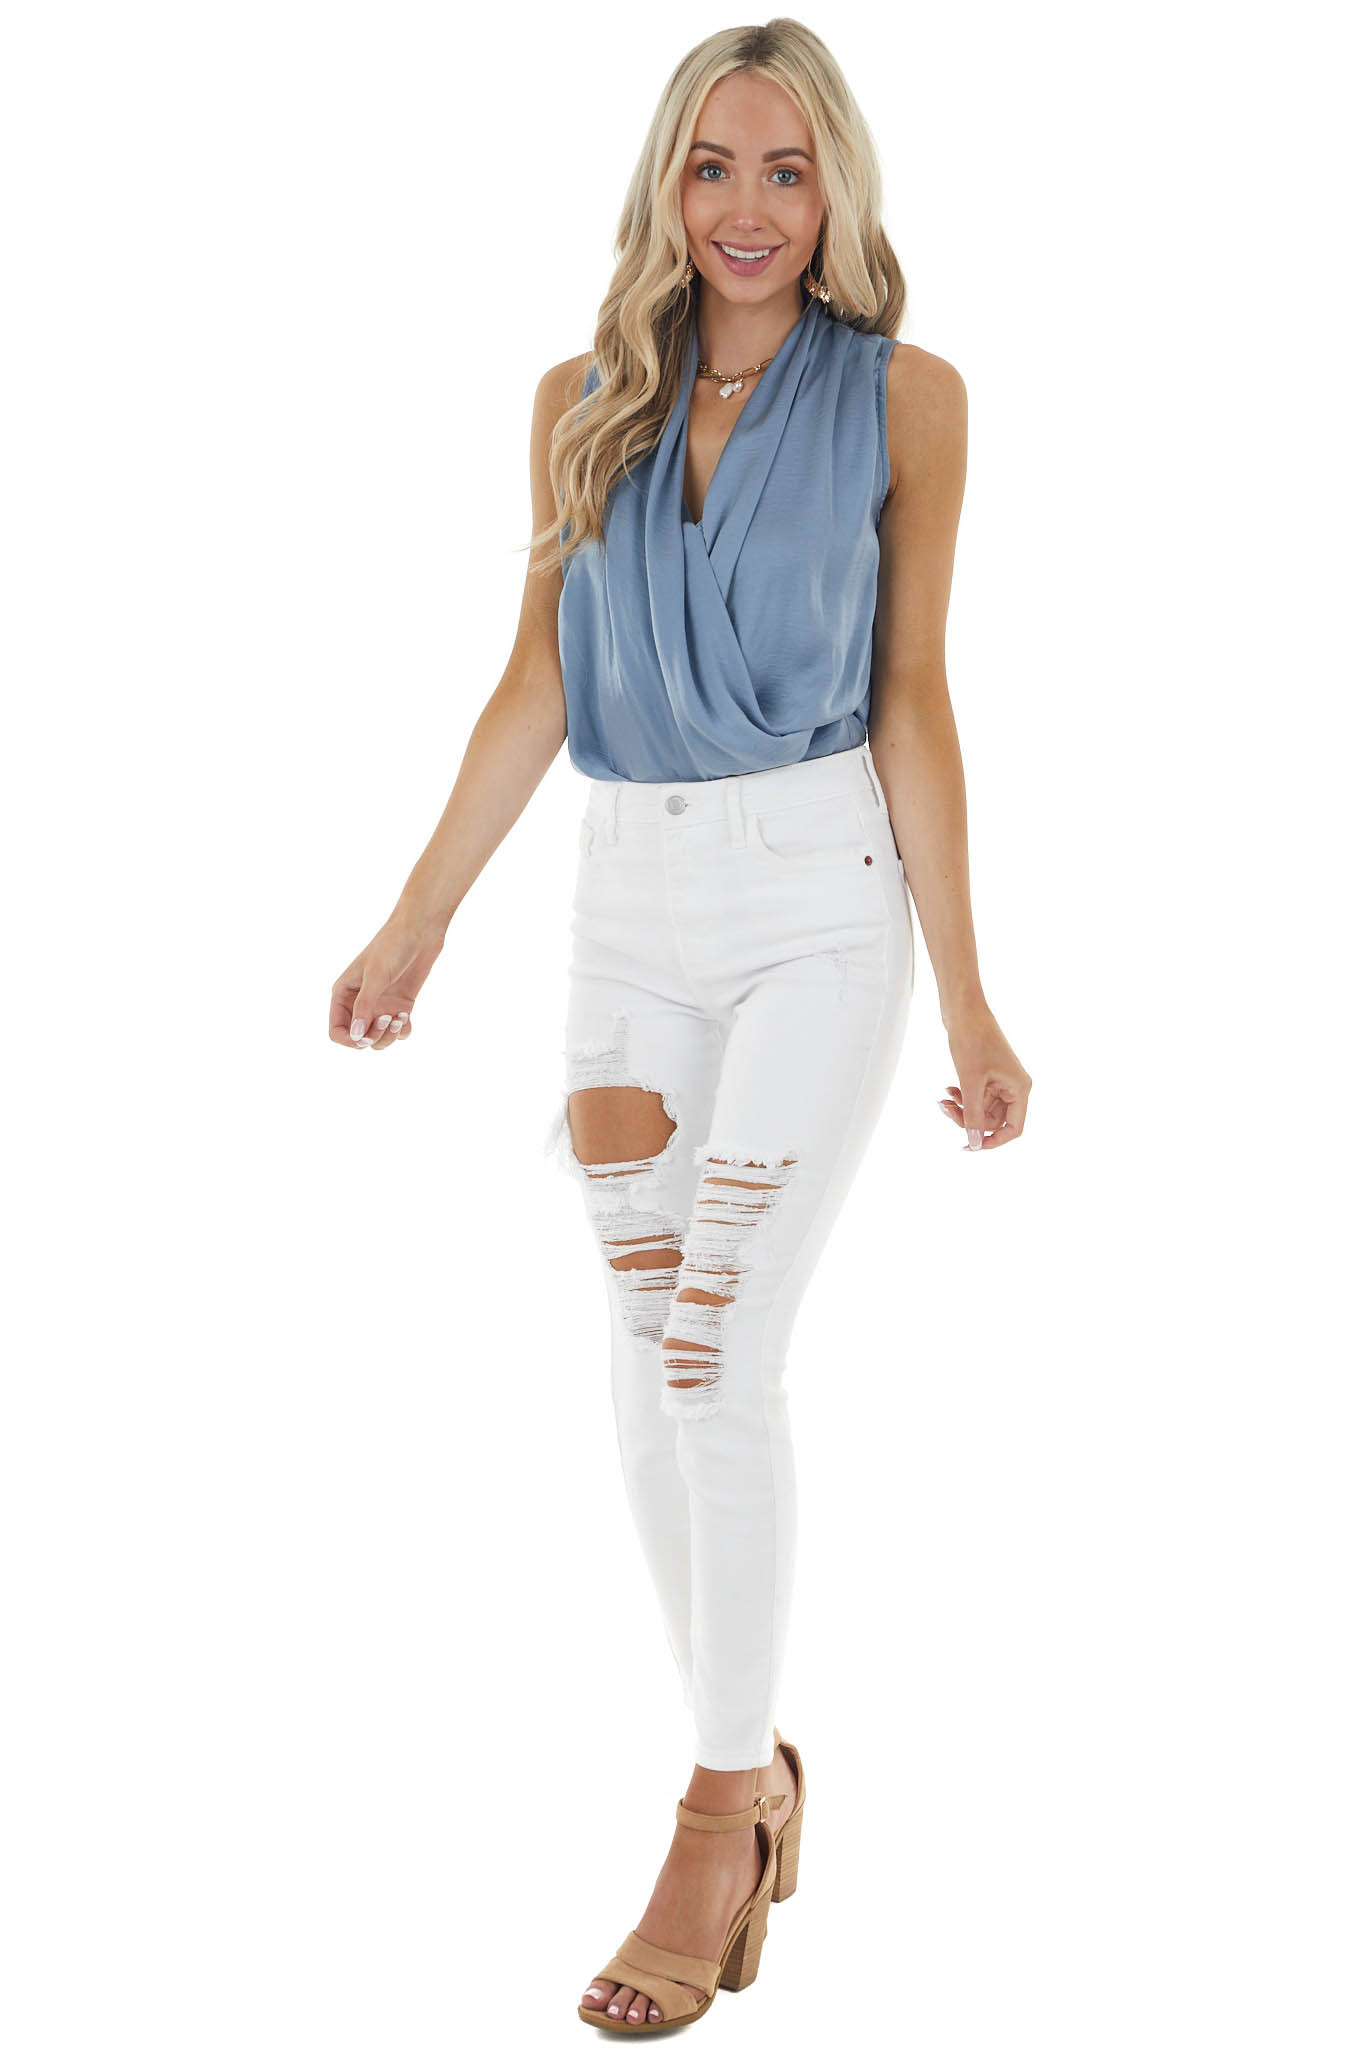 Powder Blue Sleeveless Surplice Top with Draped Front